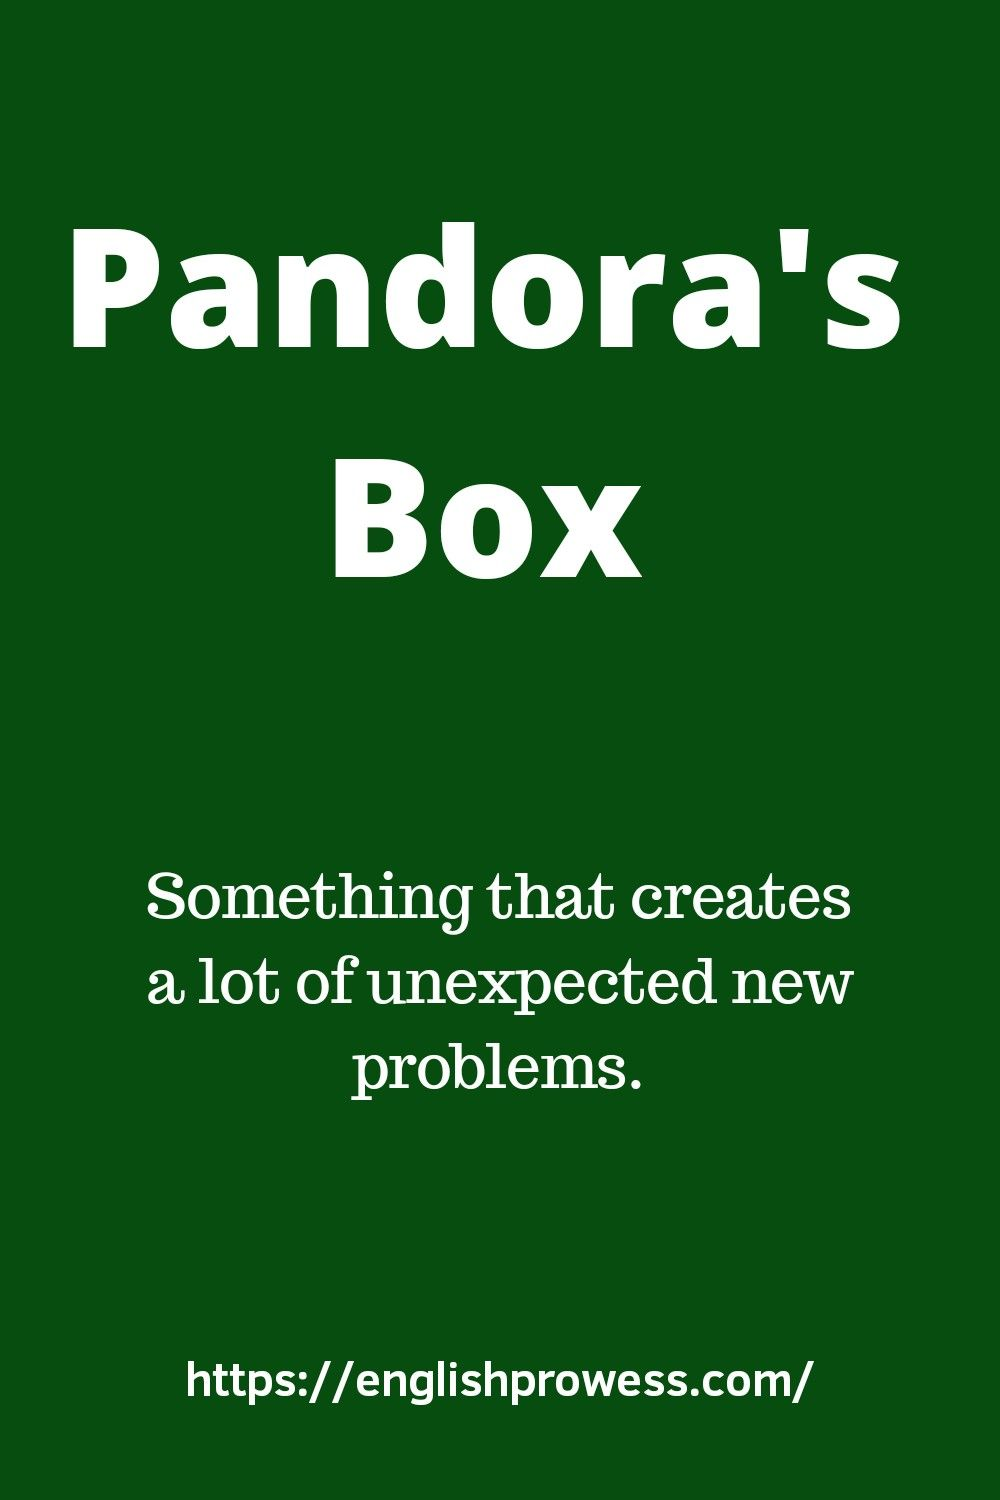 Pandora's Box Meaning | Learning english online, Learn english ...